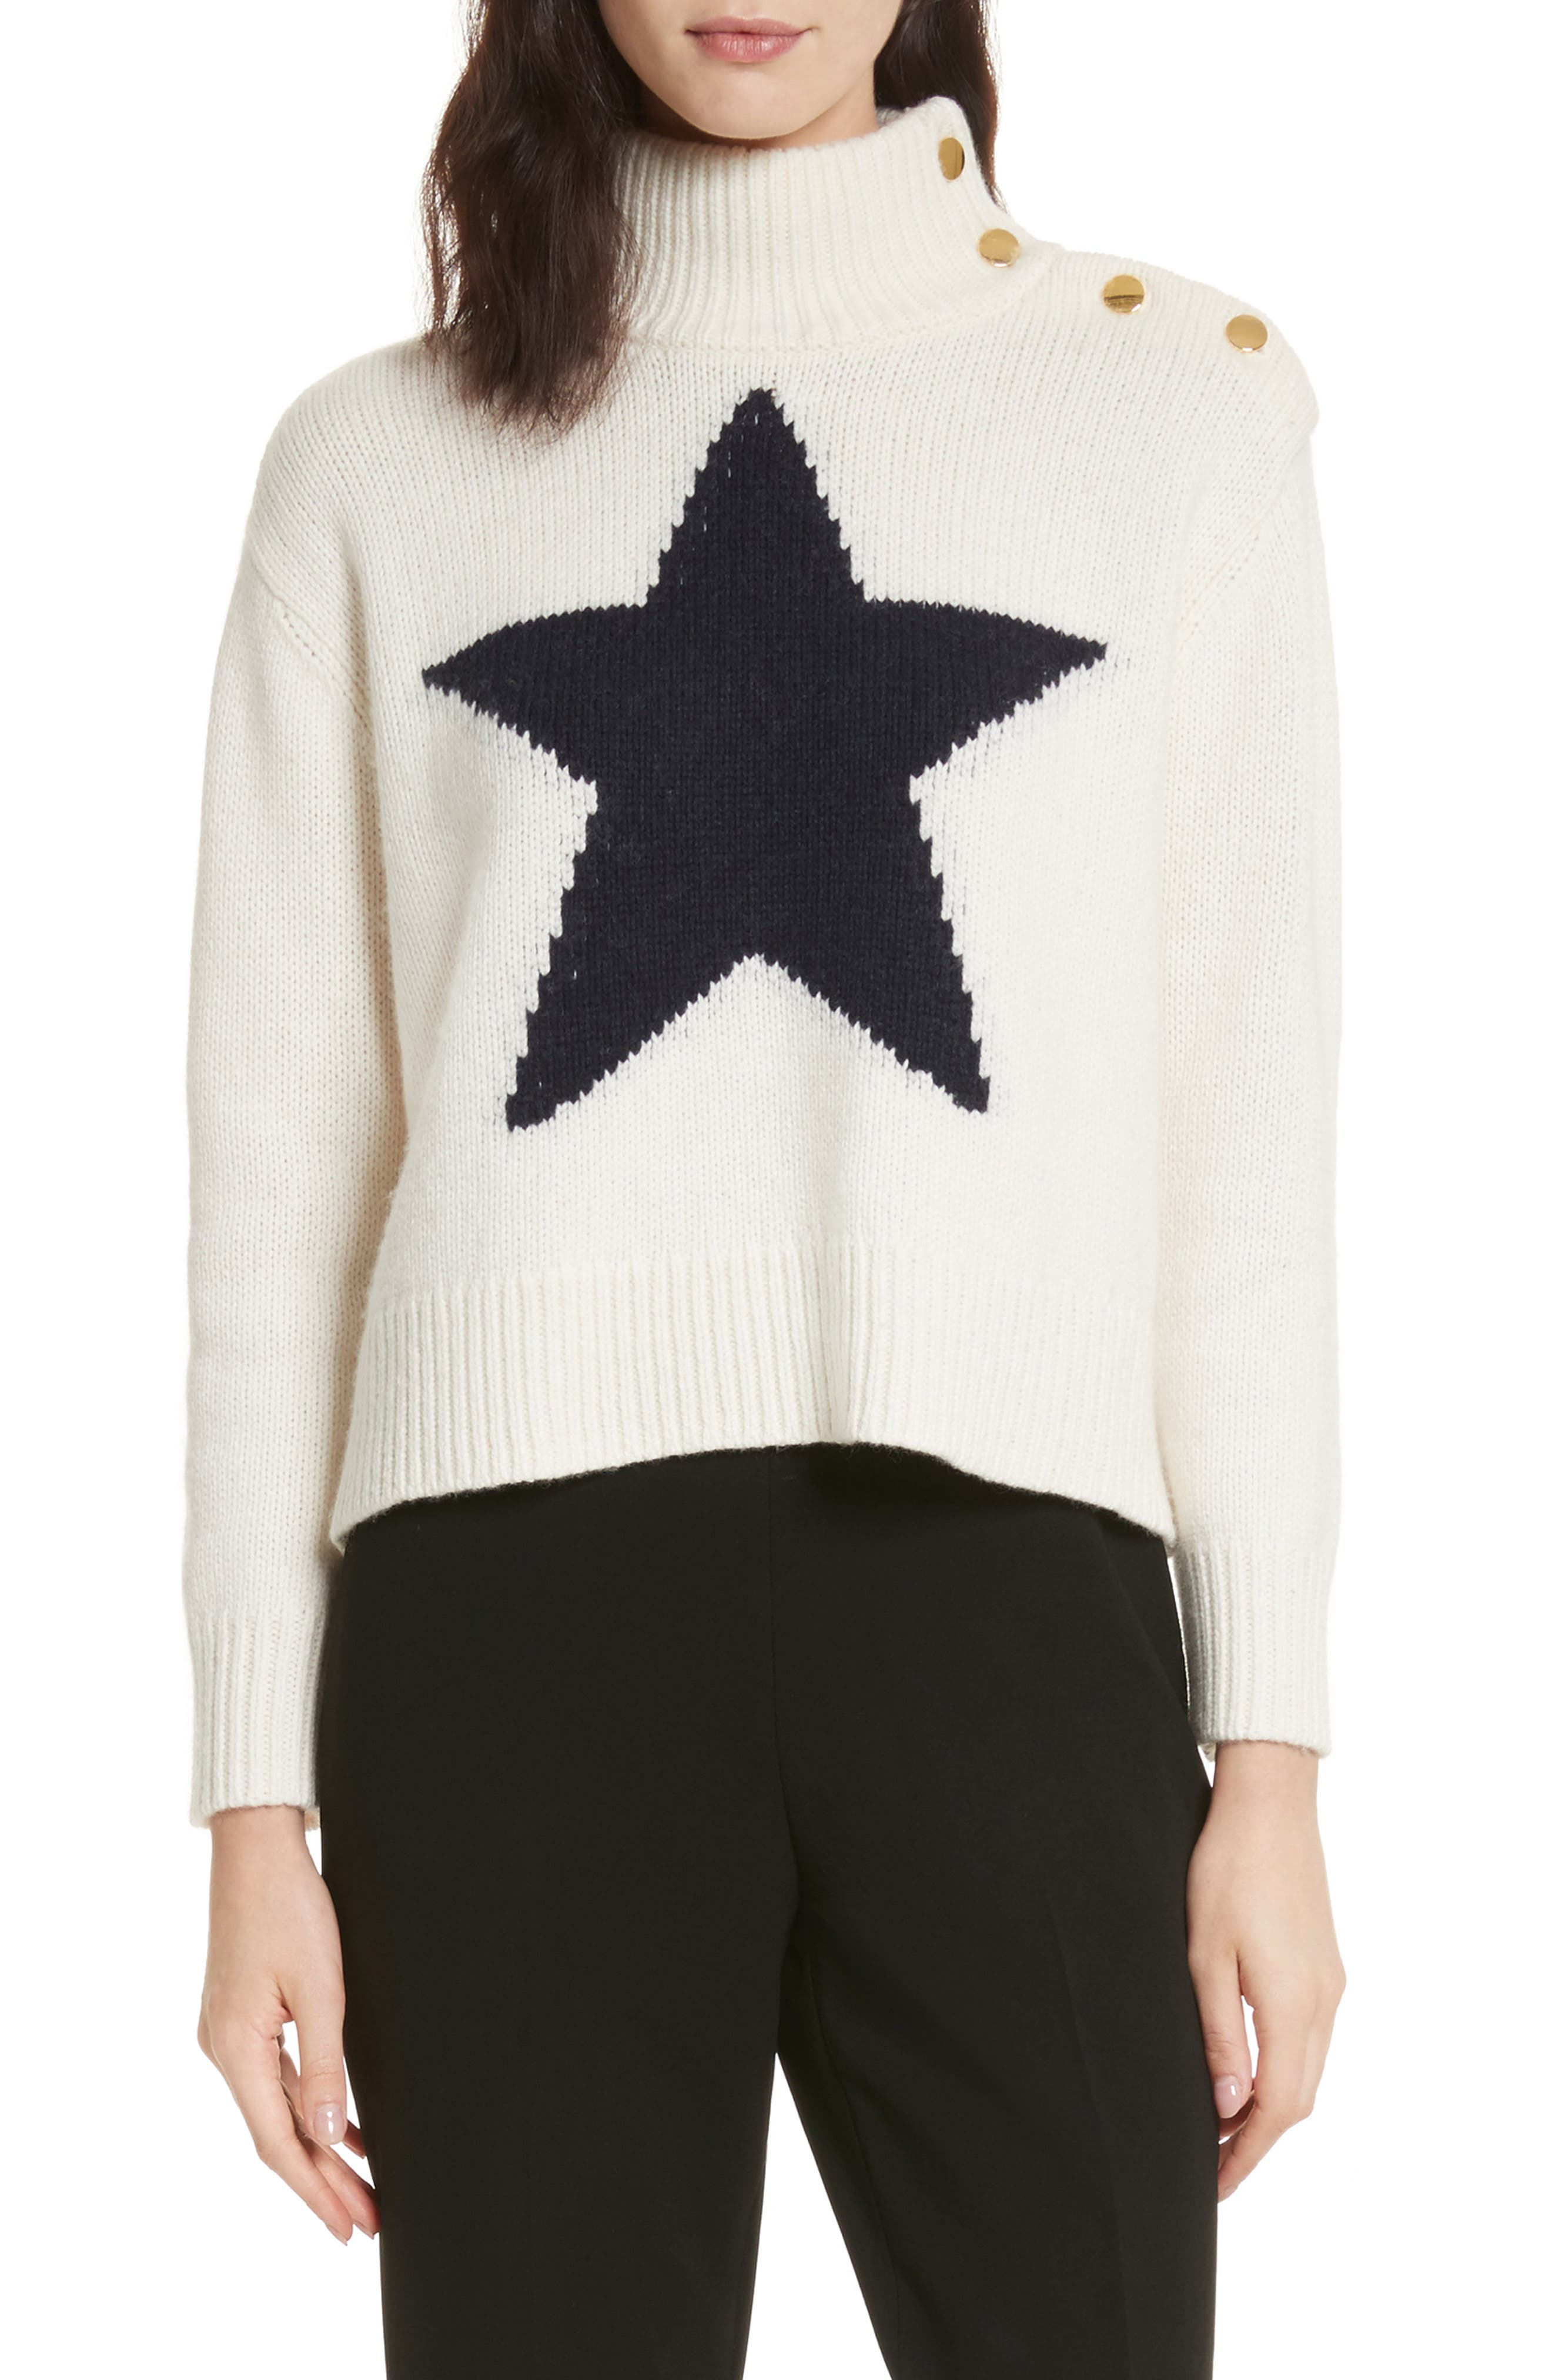 star turtleneck sweater,                         Main,                         color, 251